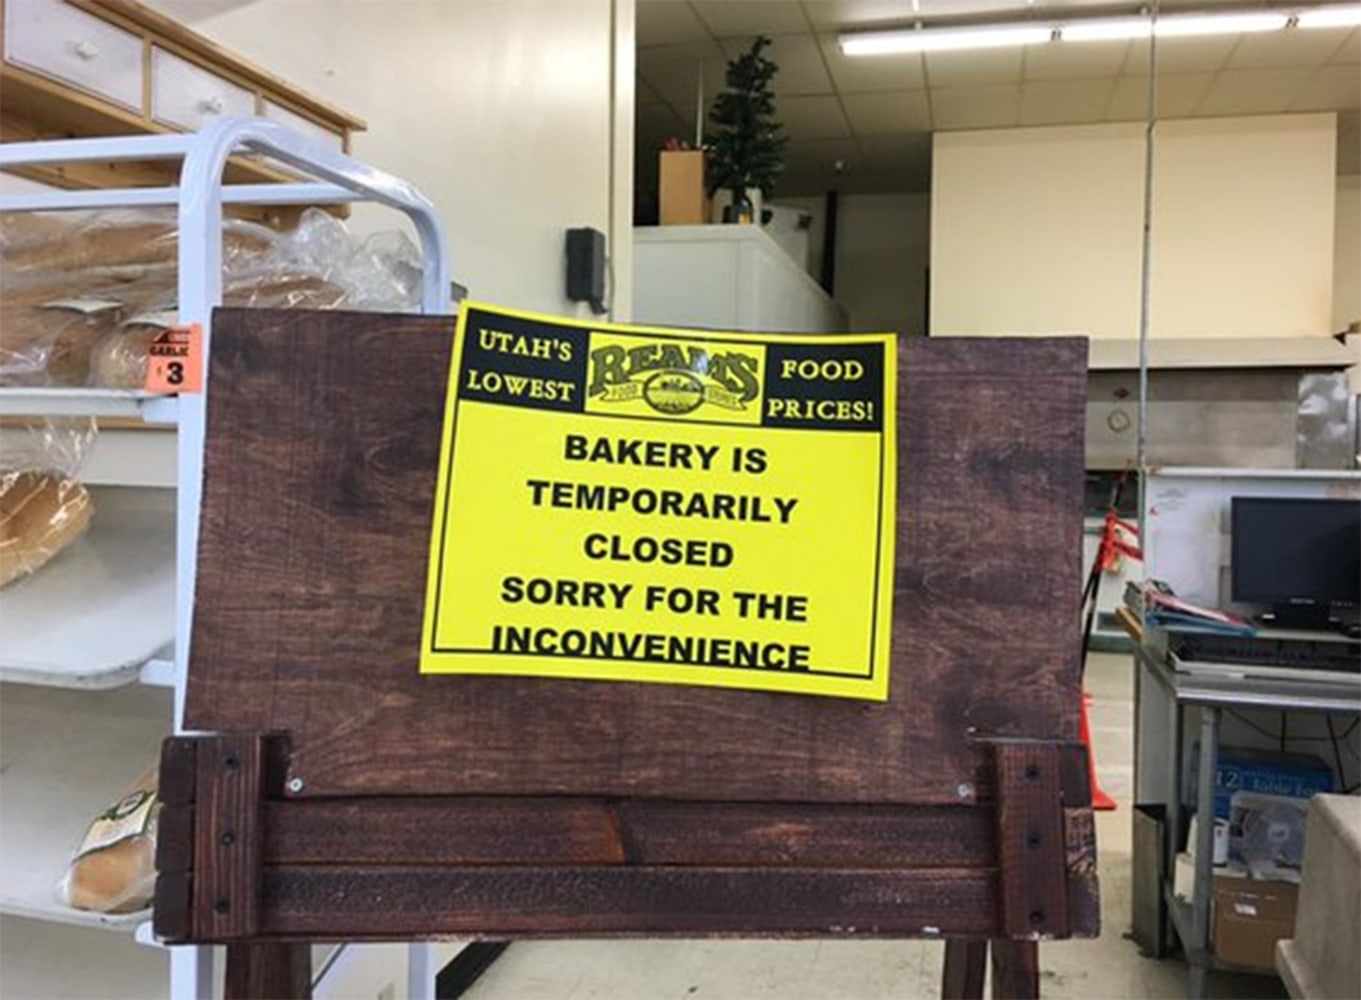 reams food store worker in utah dies after getting dragged into image sign at the bakery